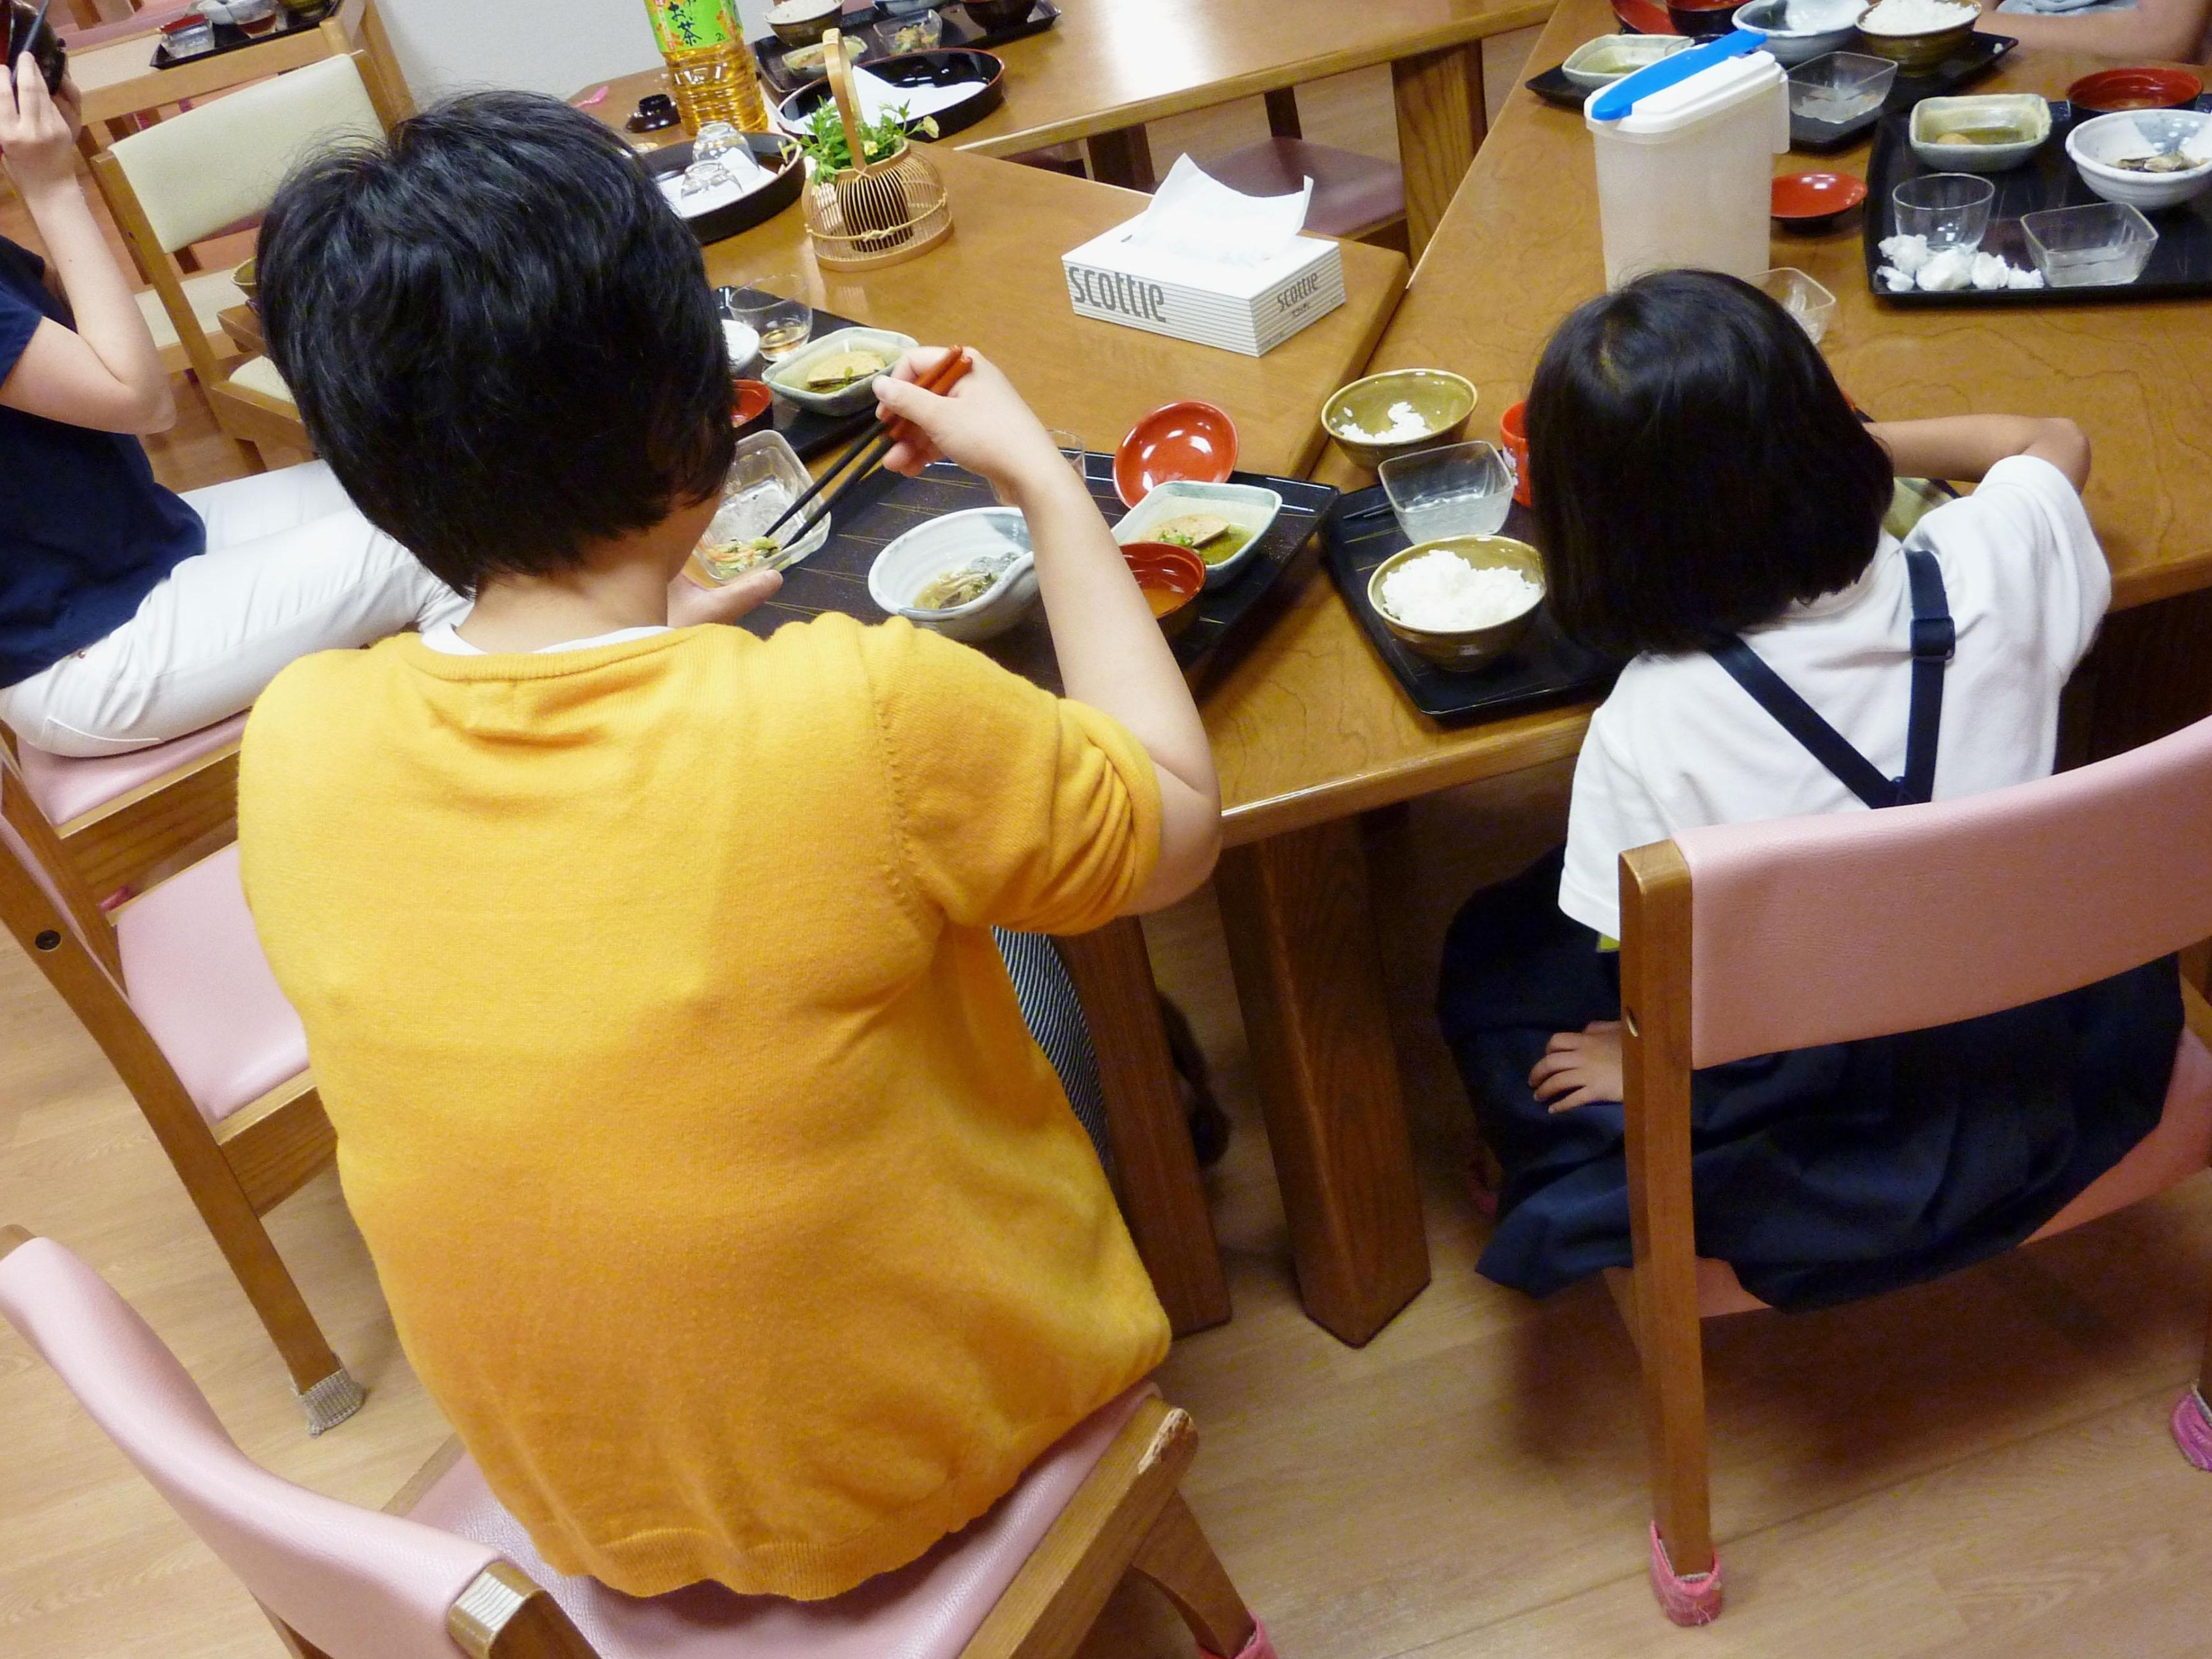 okinawa single parents Okinawa, referred to as okinawa main island, is the largest and most  regular  service to naha, including from taiwan (approximately one hour/45 minutes  8  to 16: itoman hari 18-19: tomariiyumachi father's day fish fair.